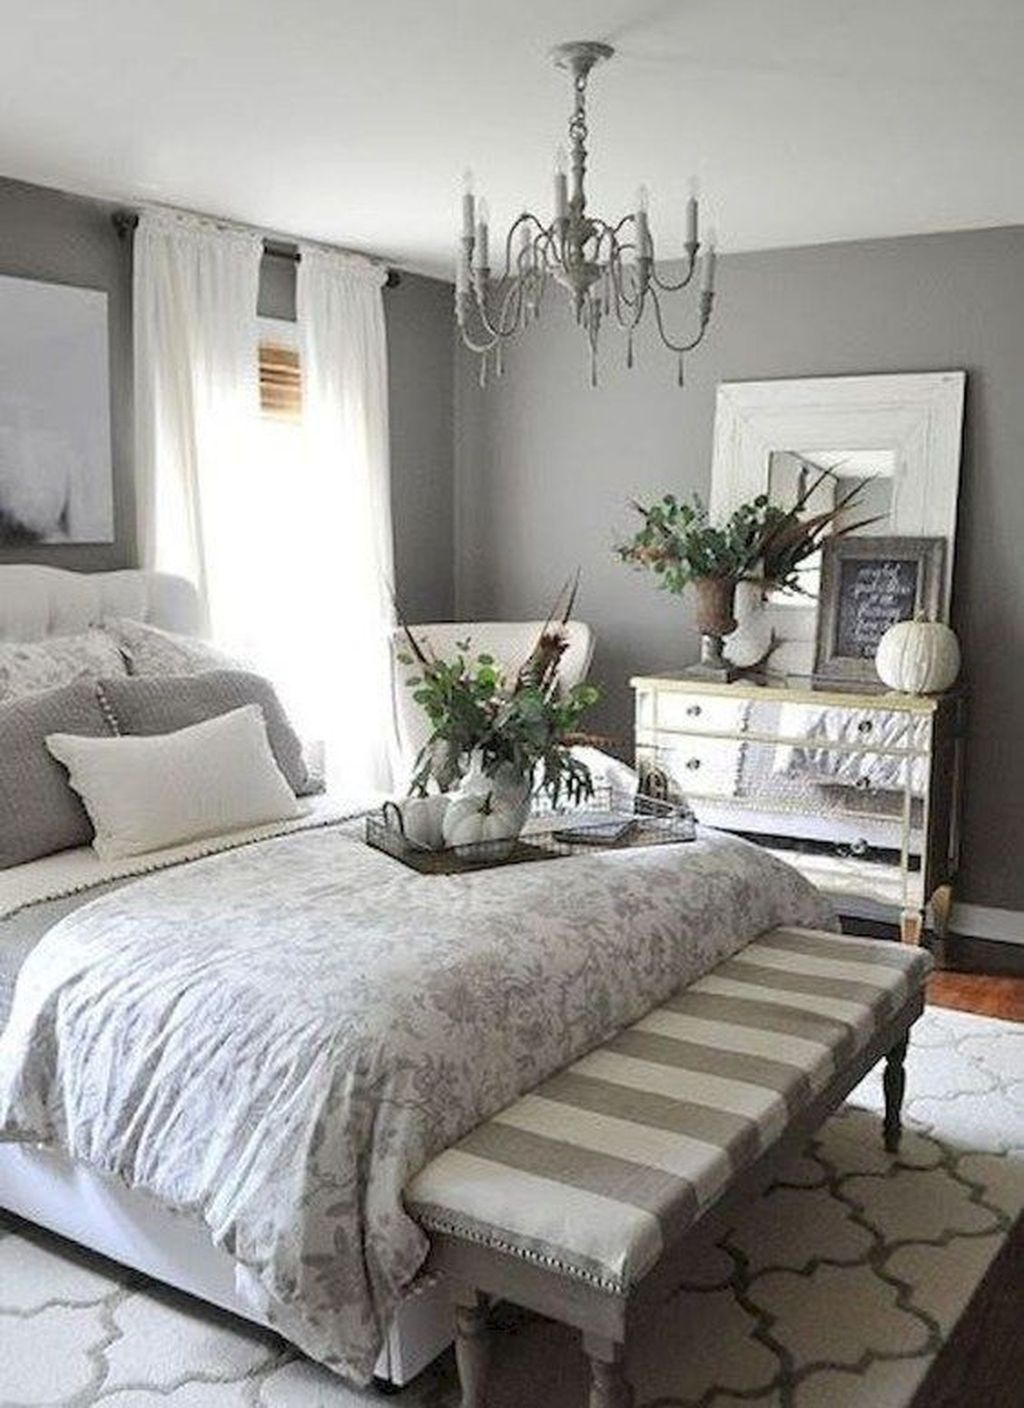 20+ Adorable Modern Farmhouse Bedroom Remodel Ideas | HAVENLY ...